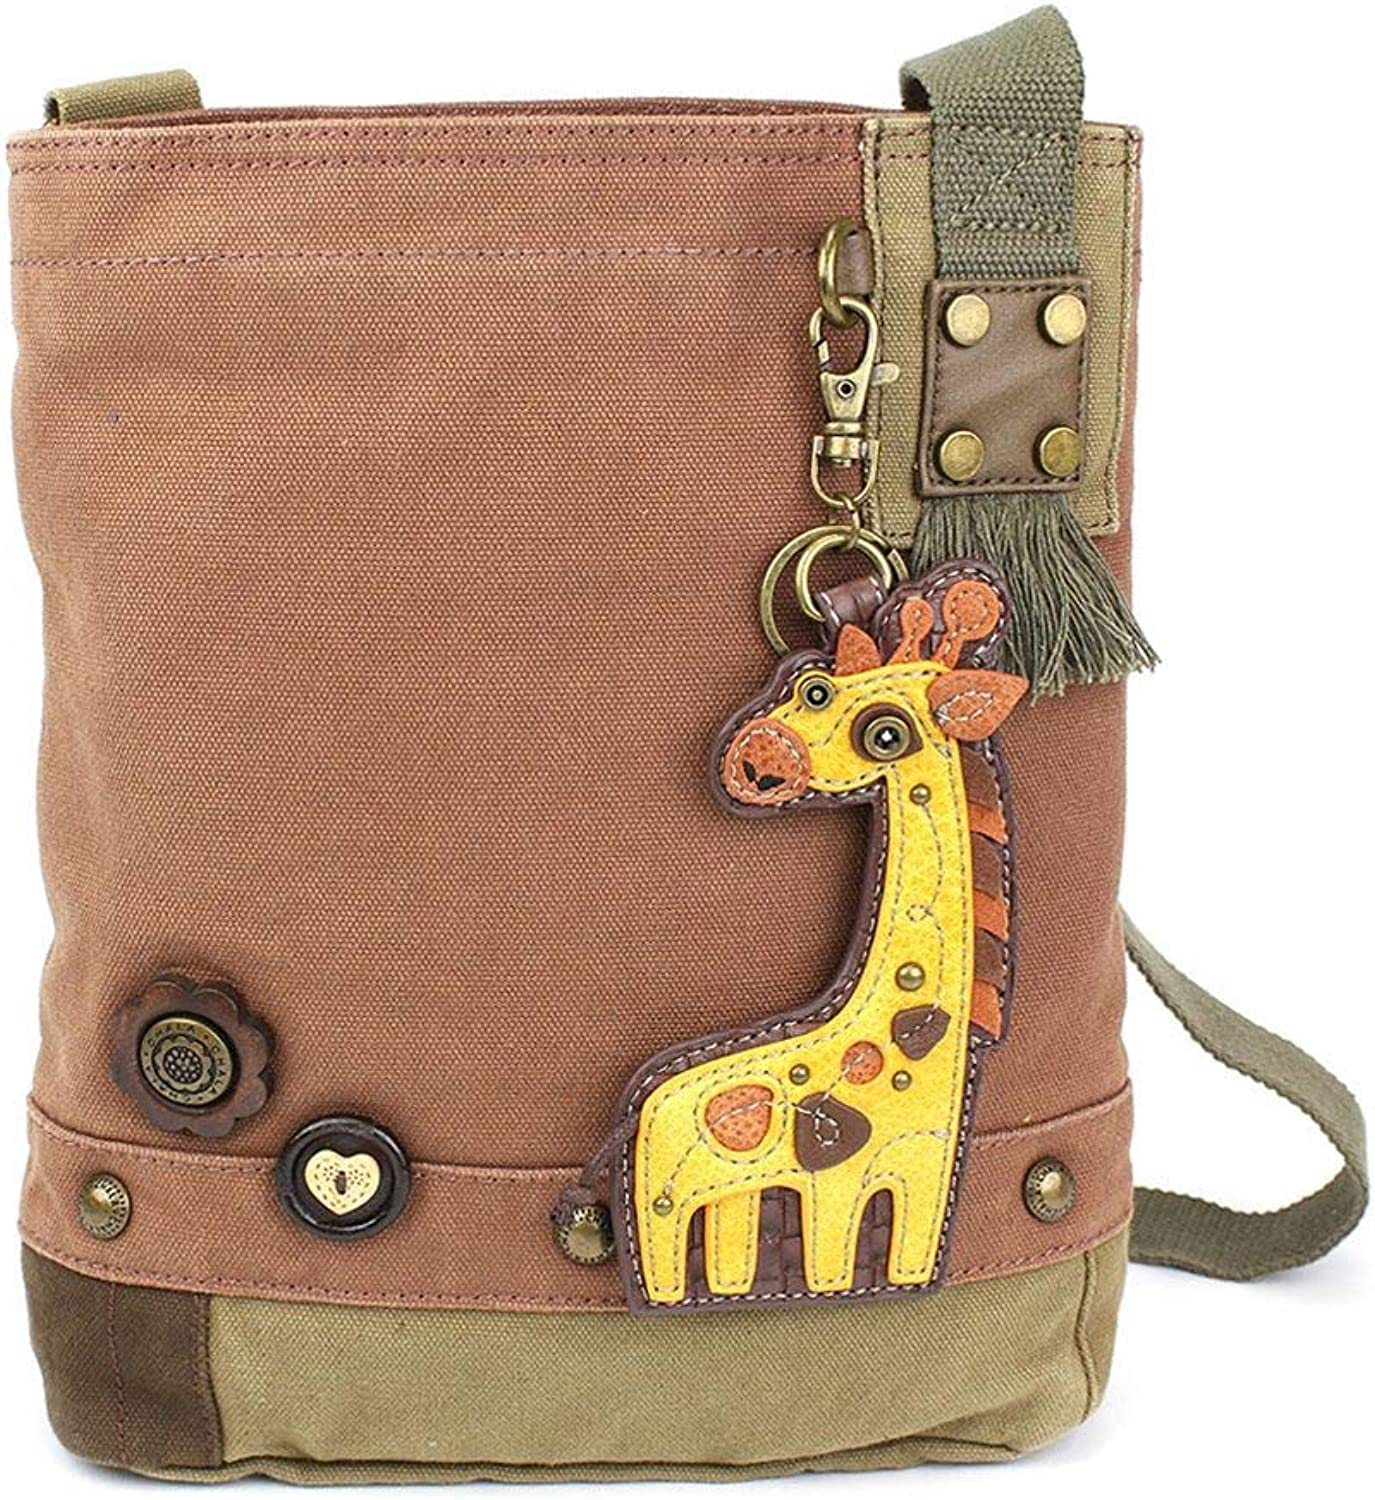 Chala Patch Crossbody Bag Canvas gift Mauve Purple purple Small Giraffe